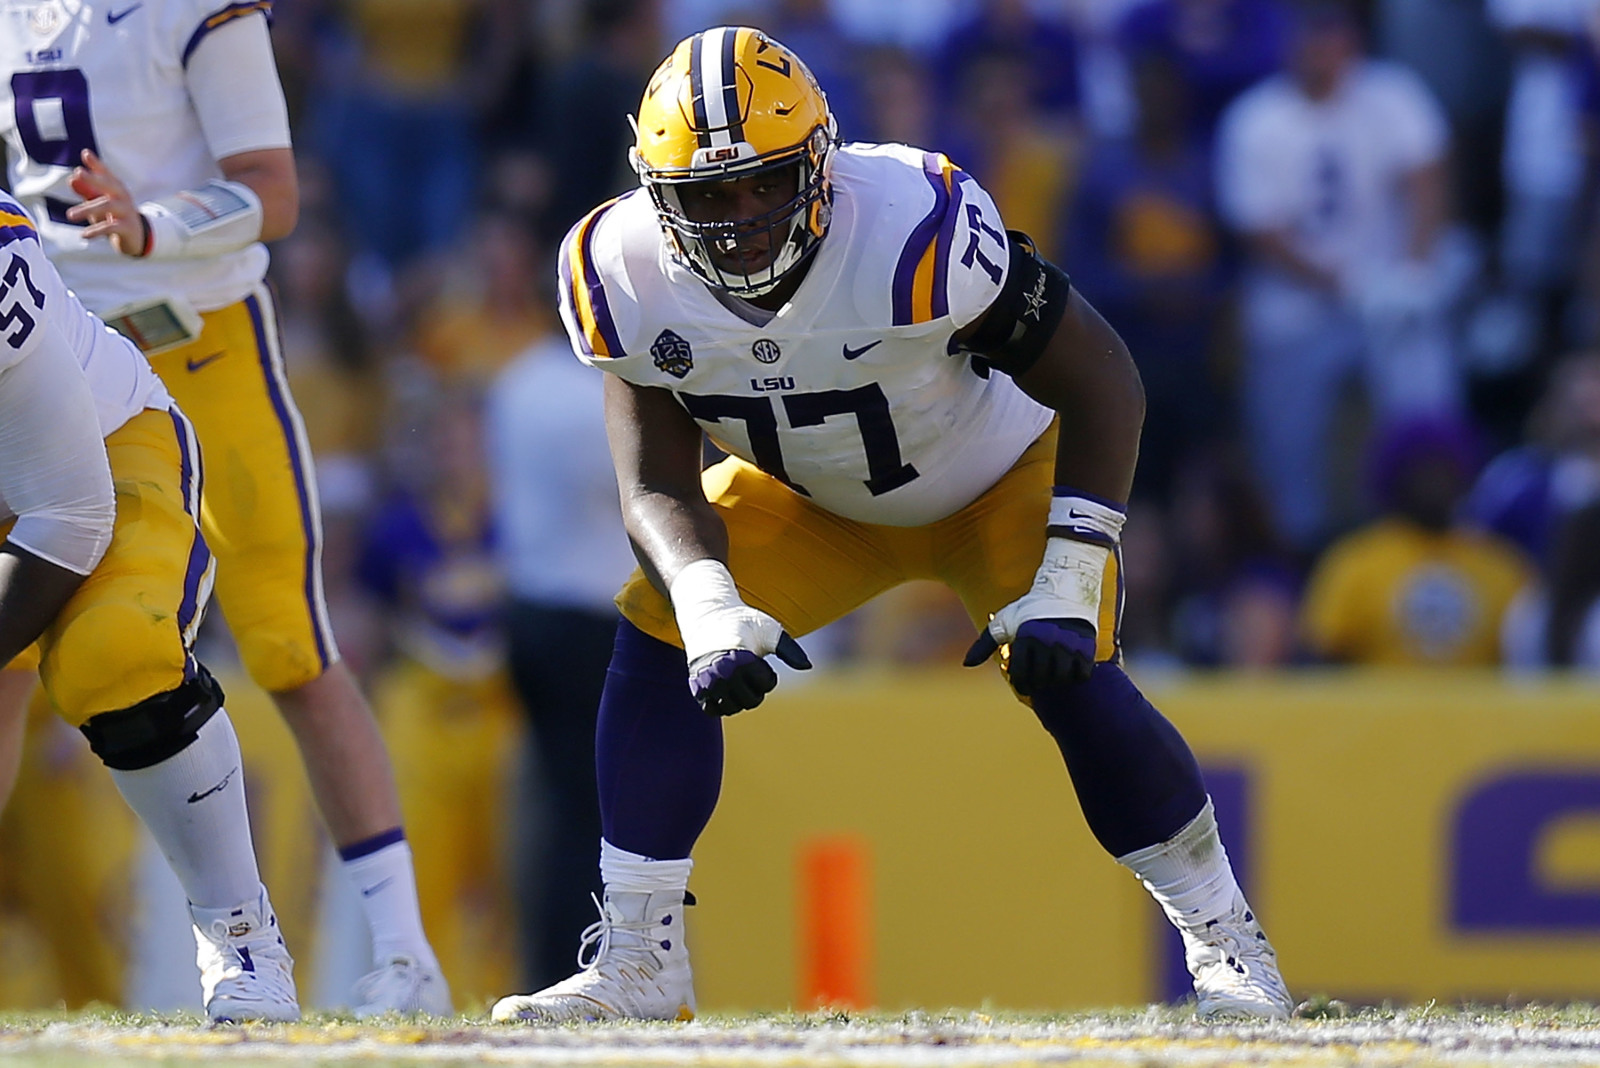 Redskins reportedly interviewed LSU tackle prospect Saahdiq Charles